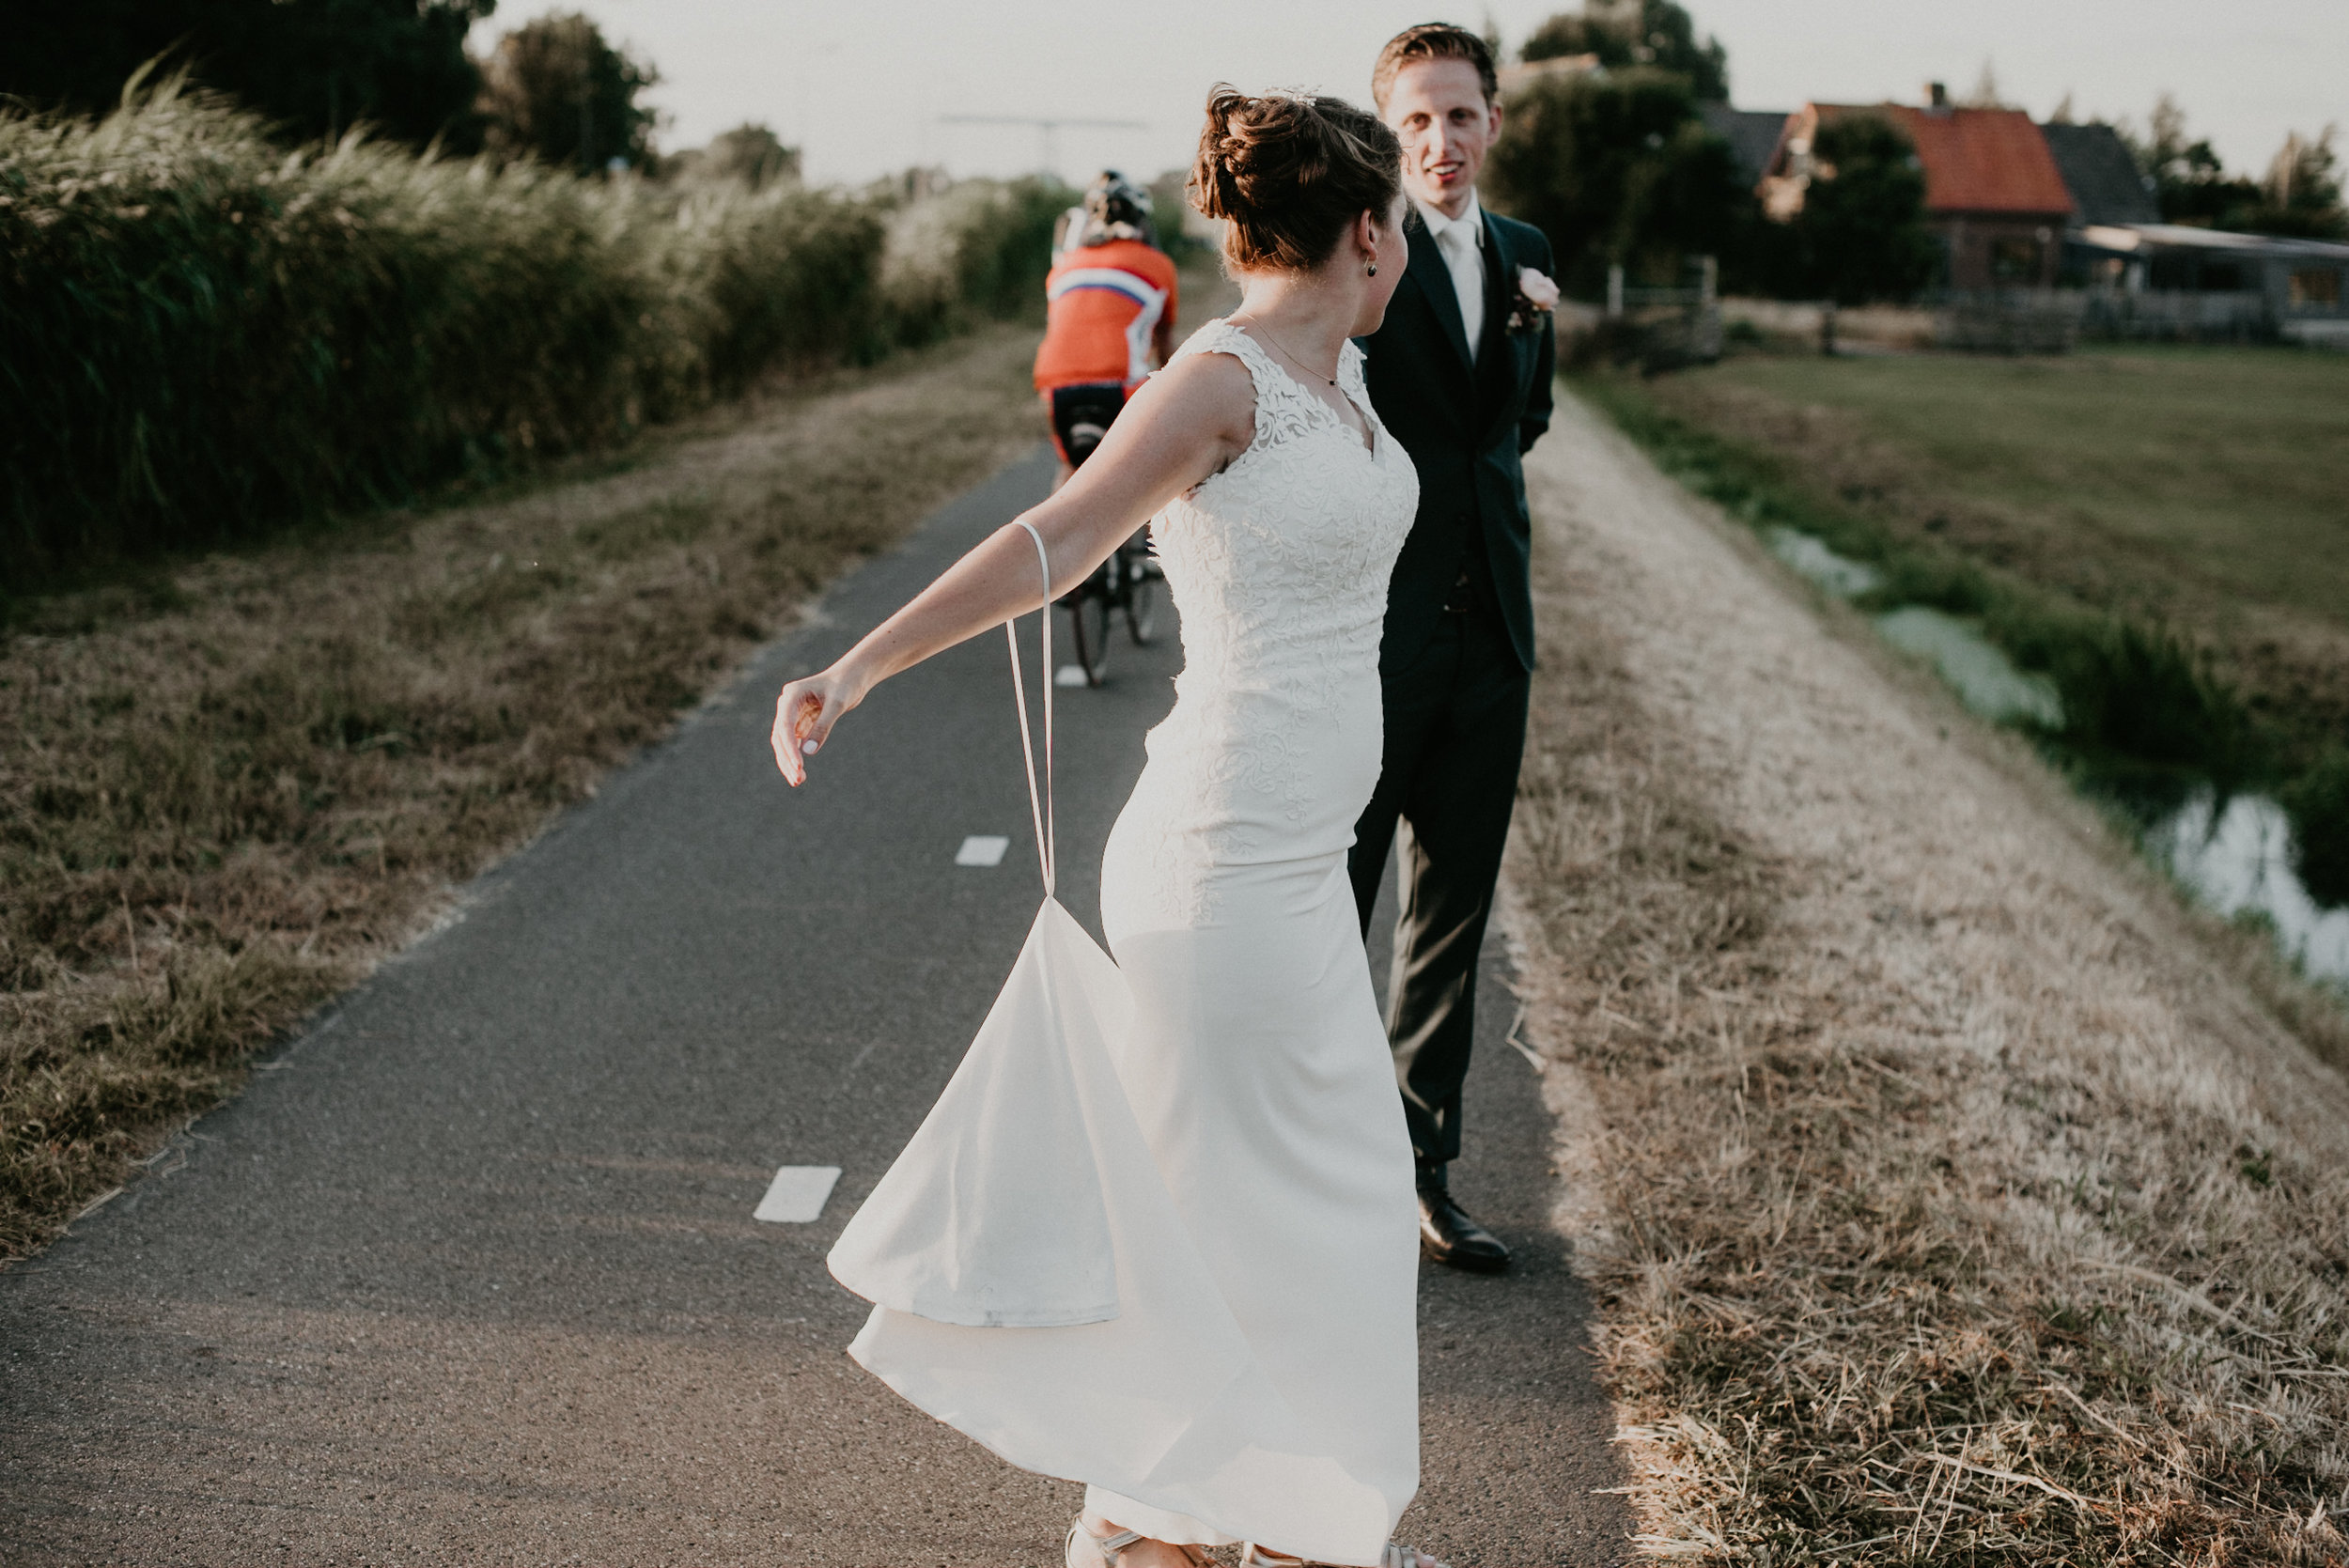 Rotterdam Wedding with Bubble Exit